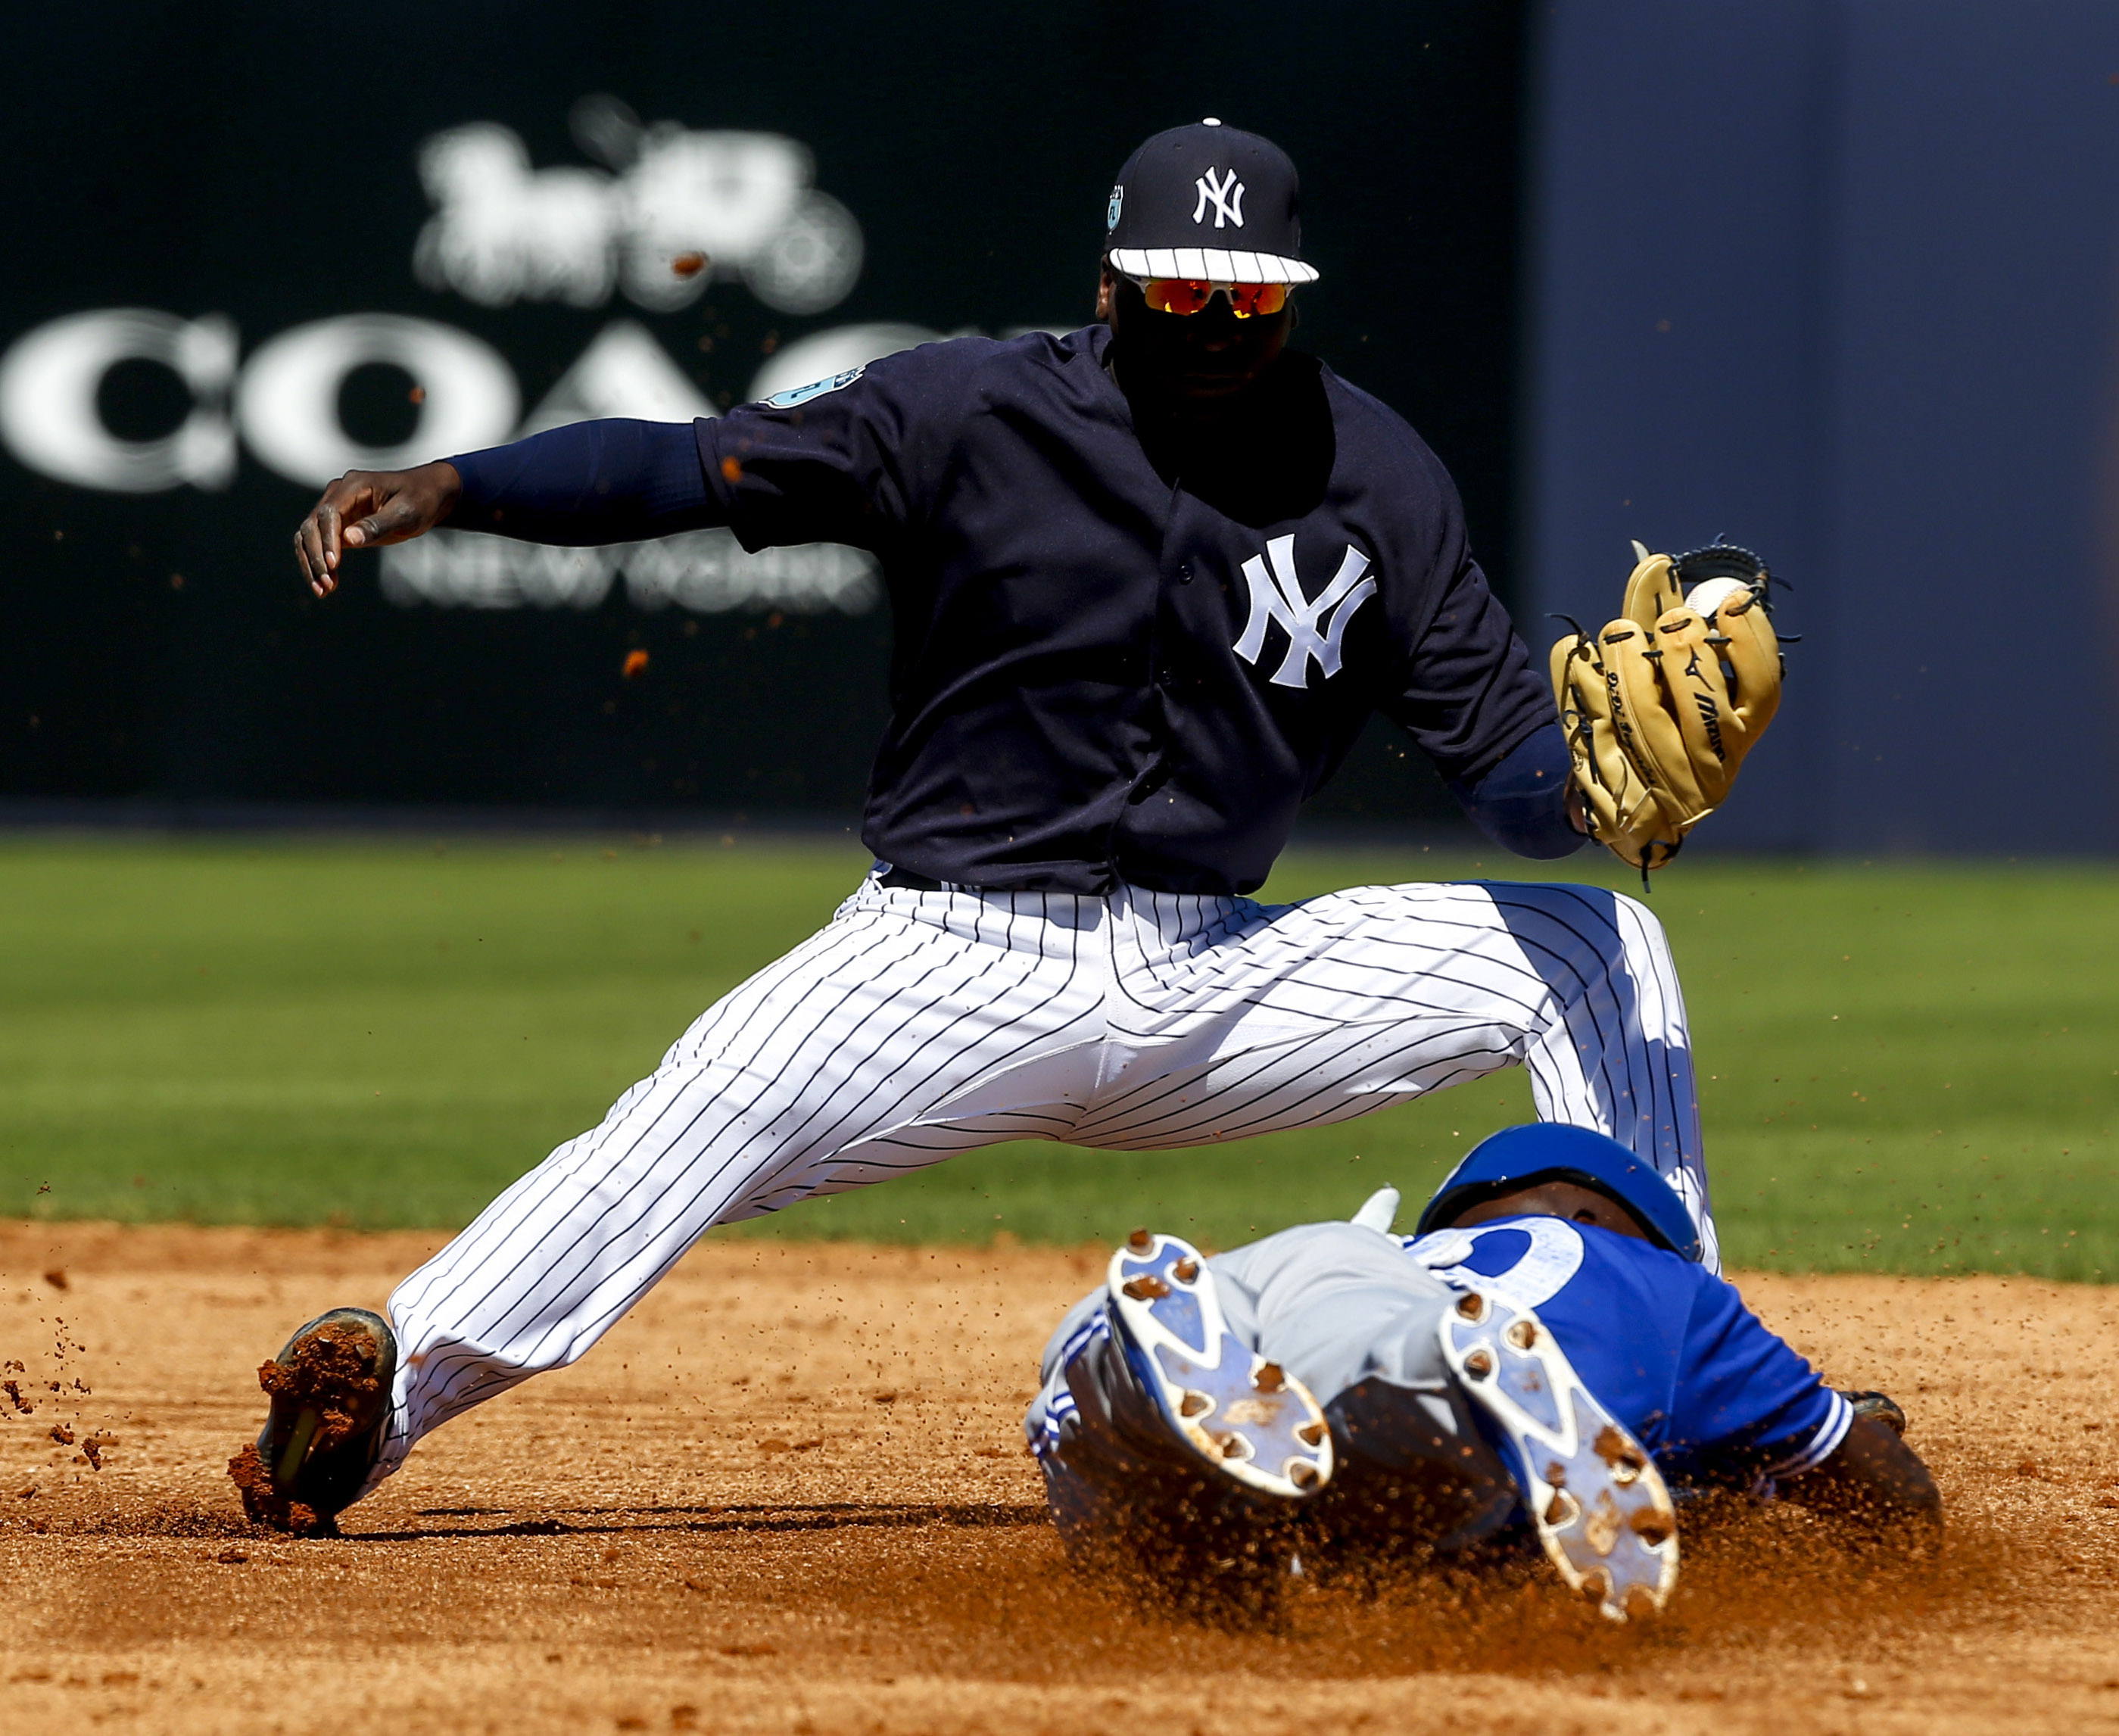 9902336-mlb-spring-training-toronto-blue-jays-at-new-york-yankees